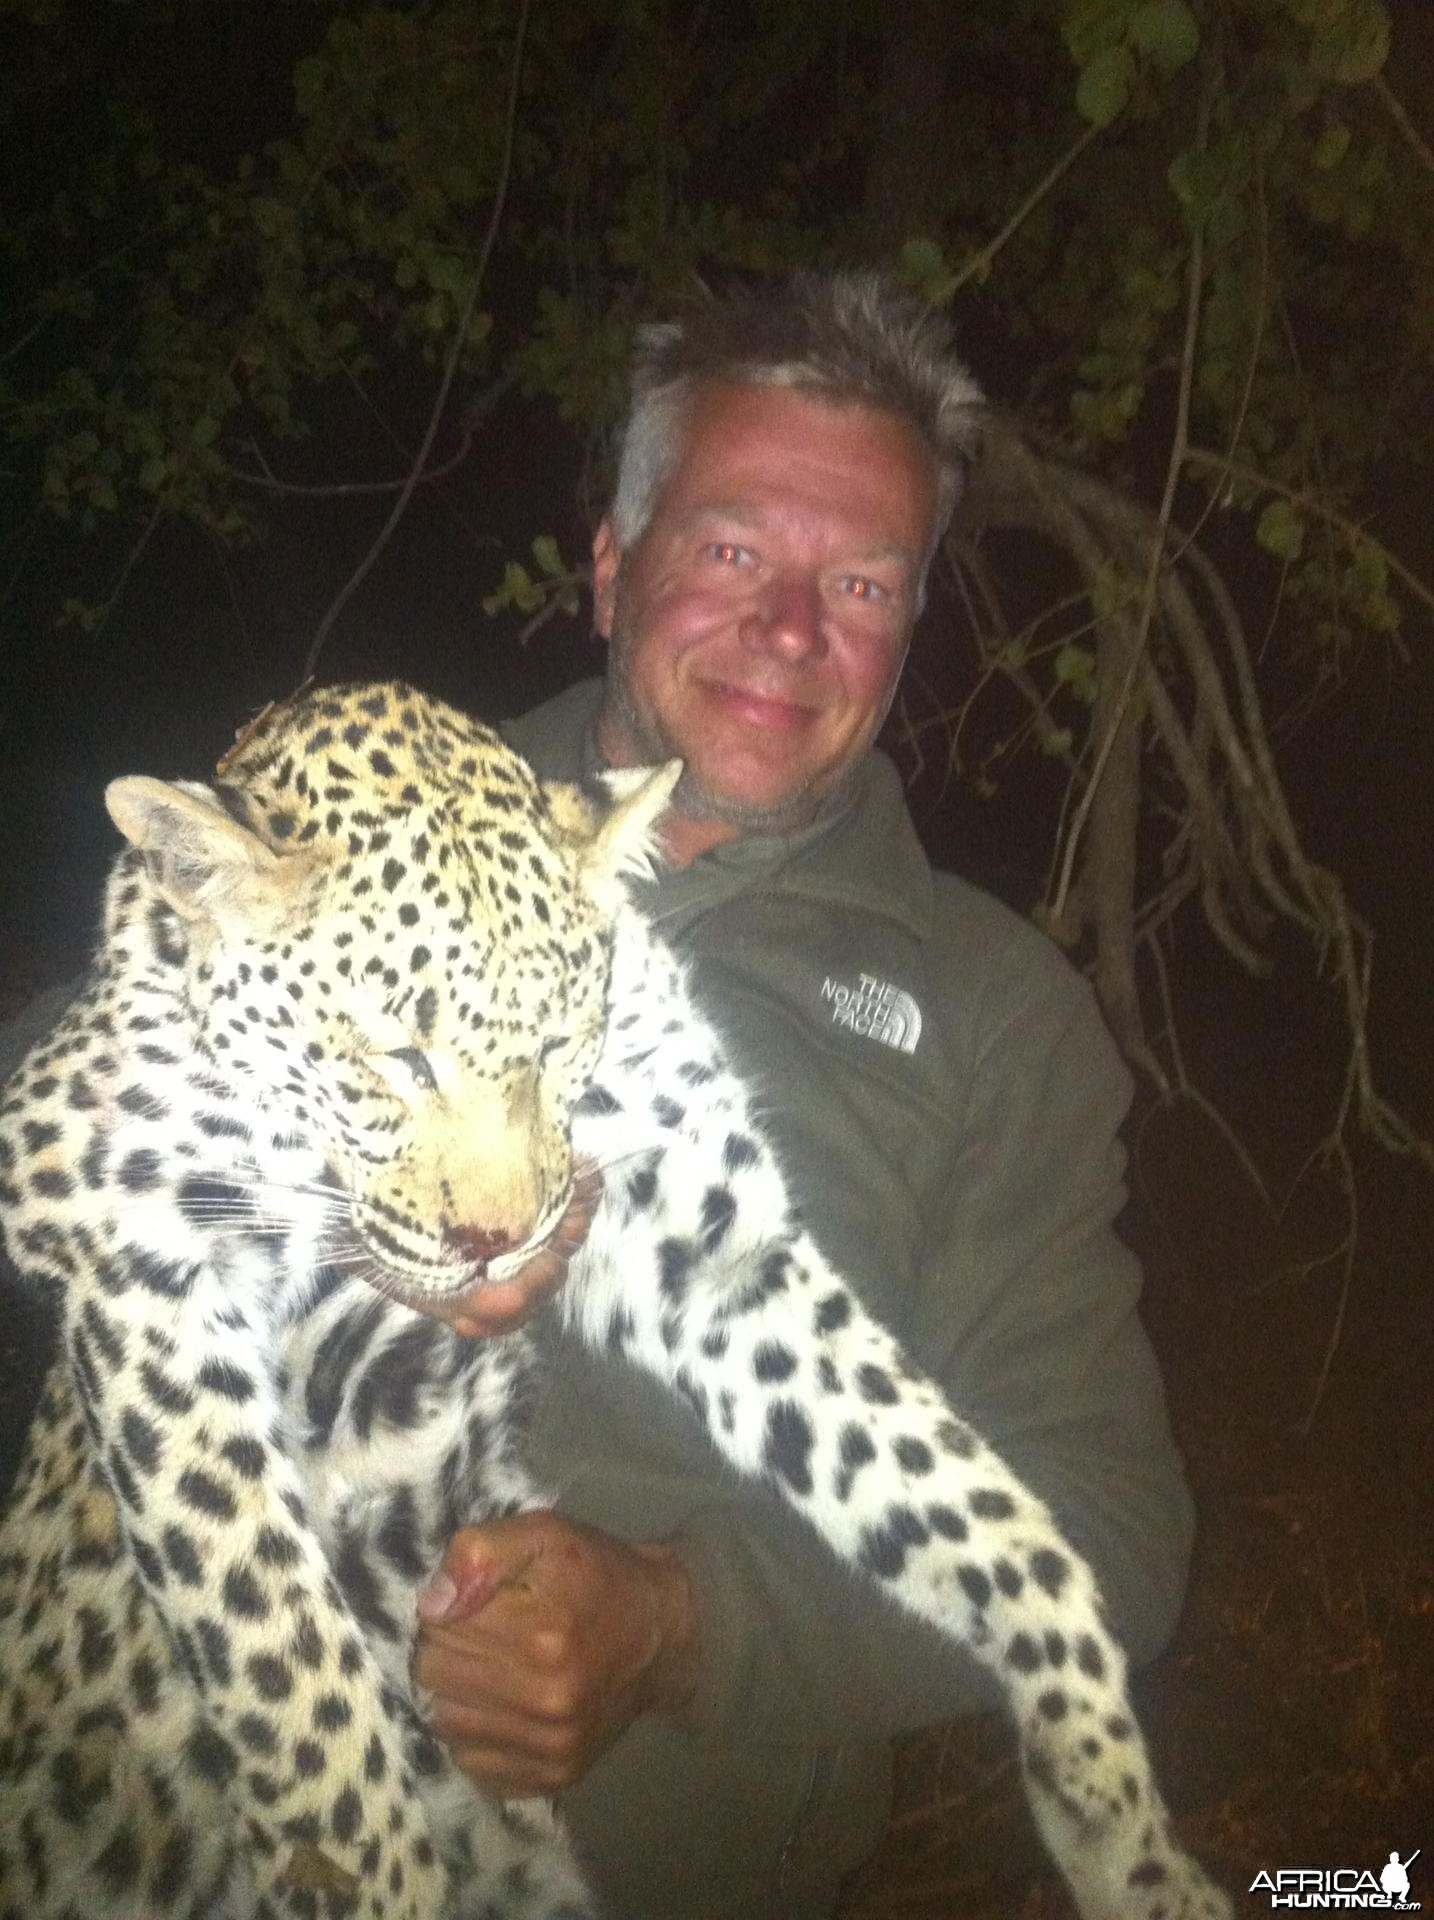 Leopard hunted in Zimbabwe